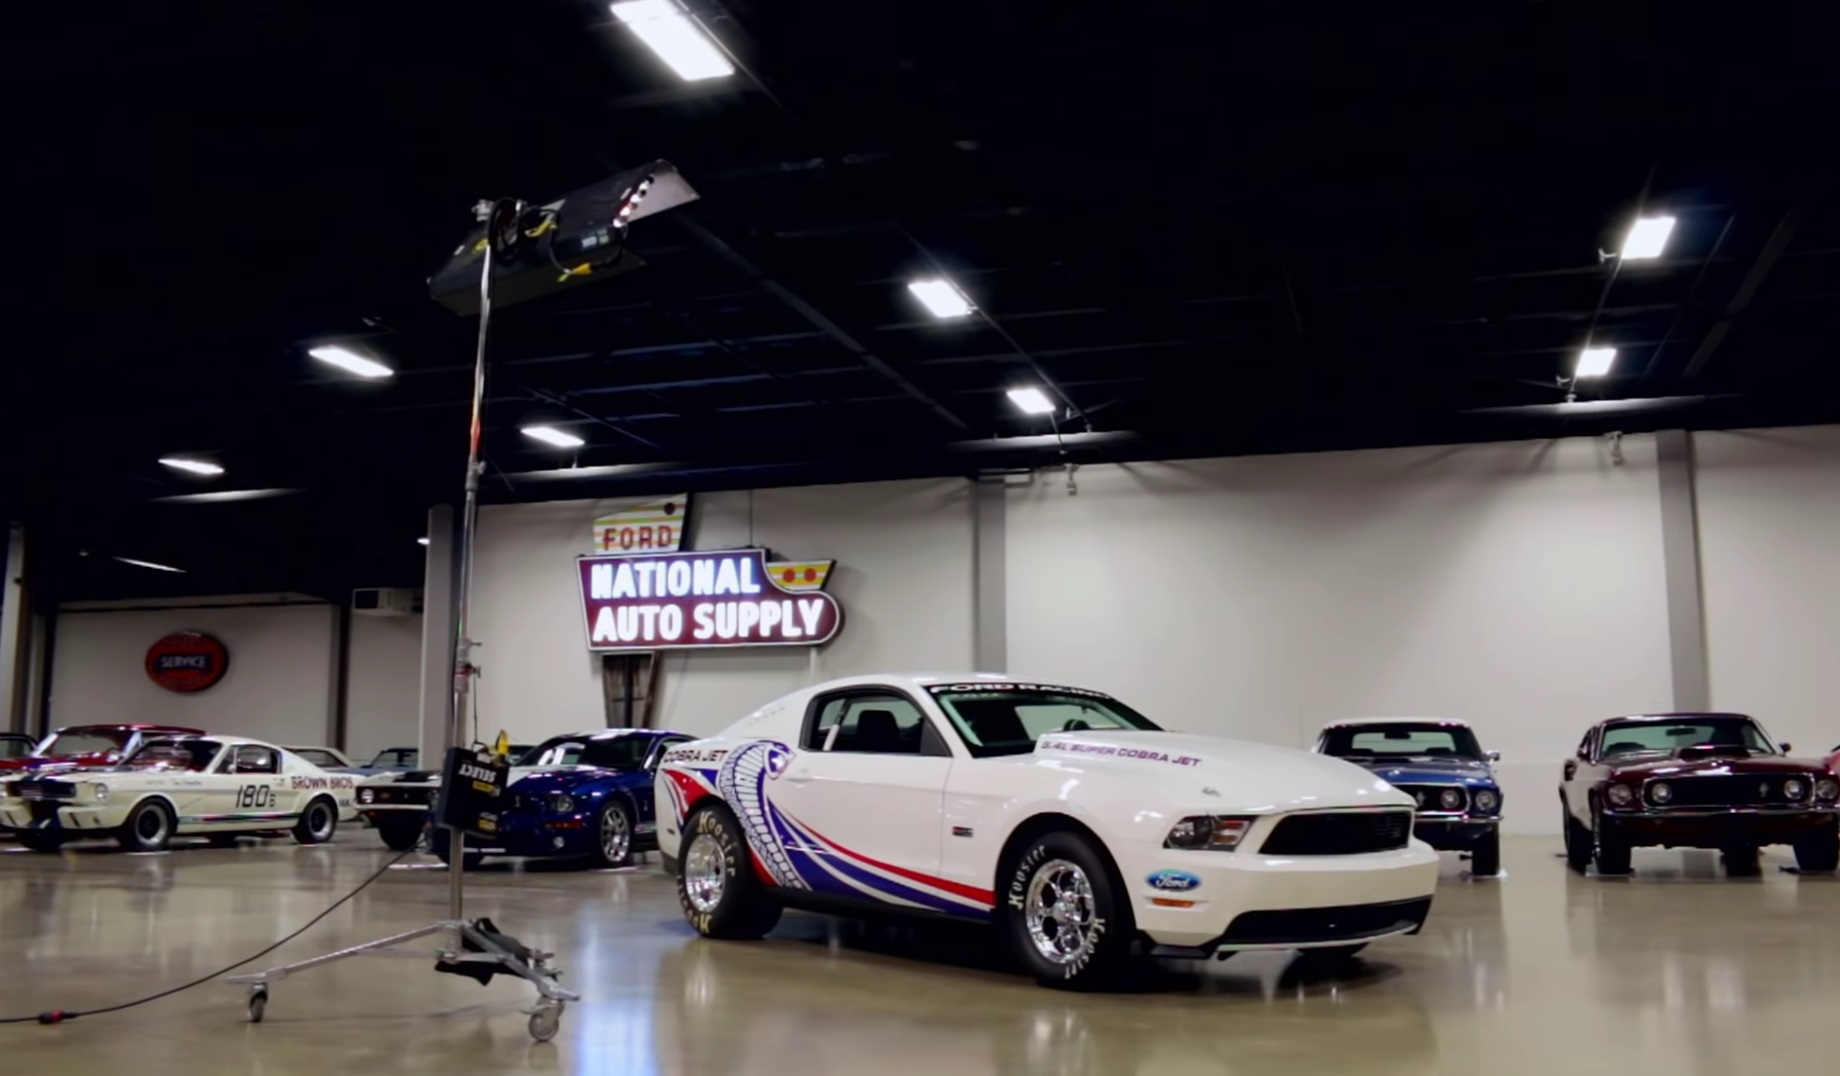 Video: 2010 Ford Mustang Super Cobra Jet Muscle Car Review